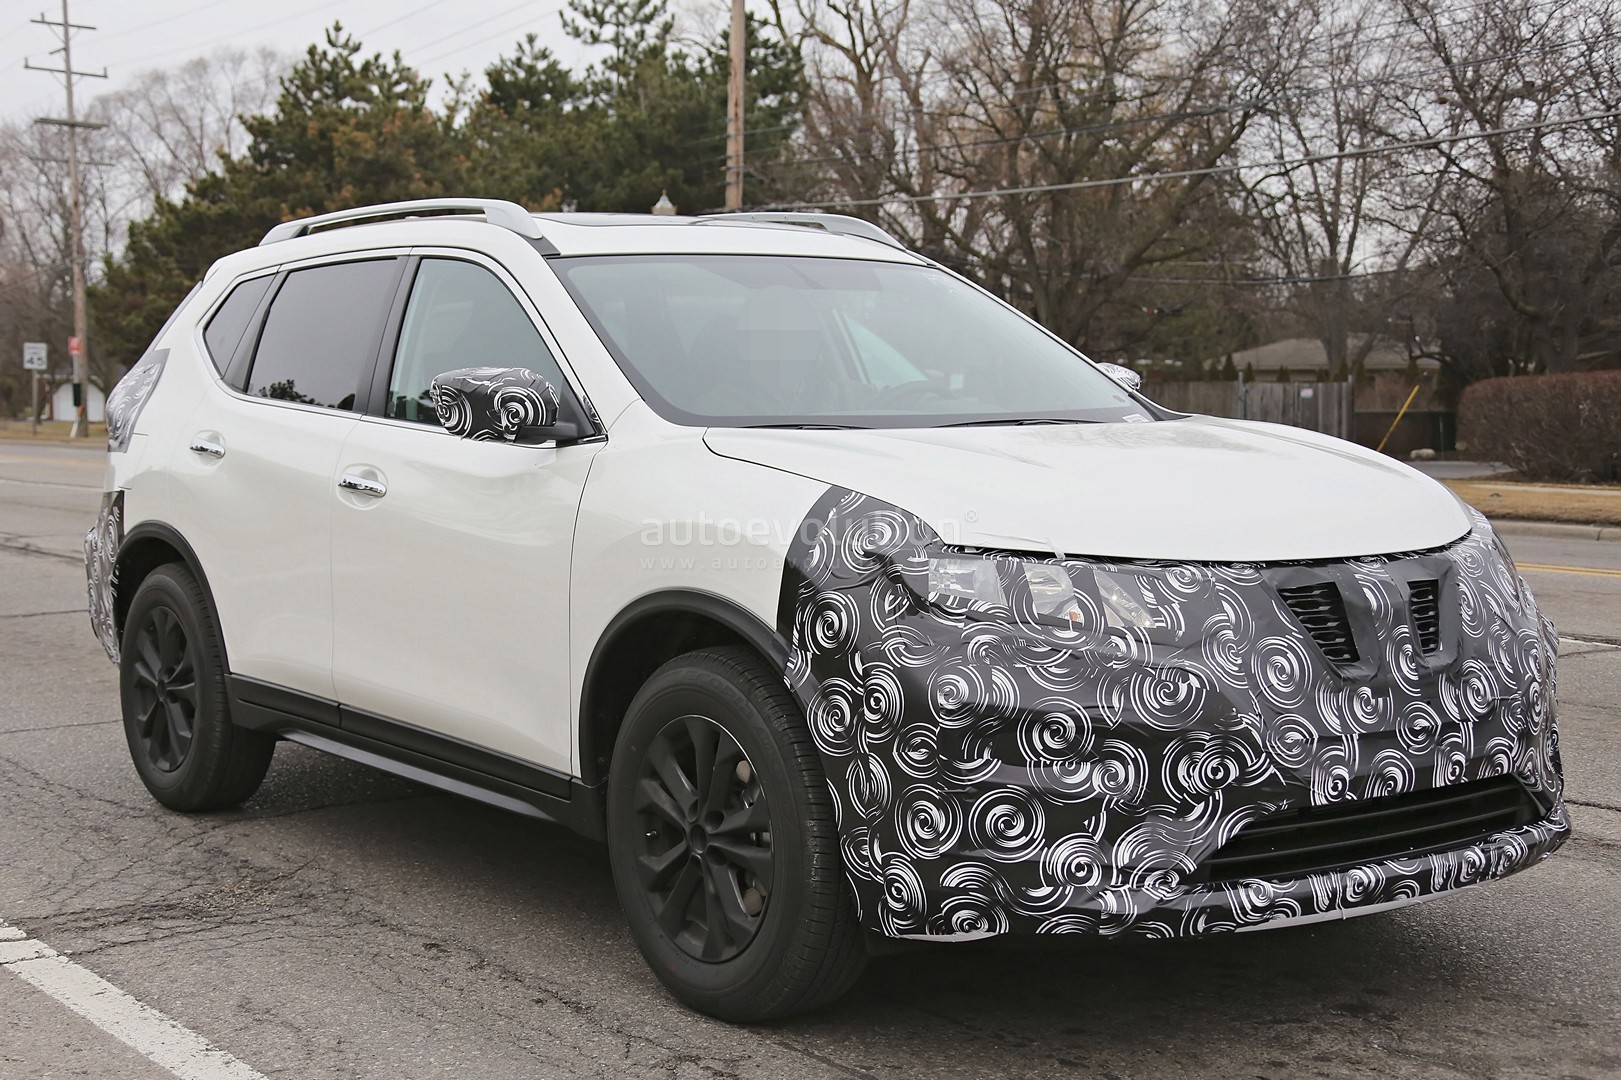 2017-nissan-rogue-spied-with-cosmetic-updates_10.jpg